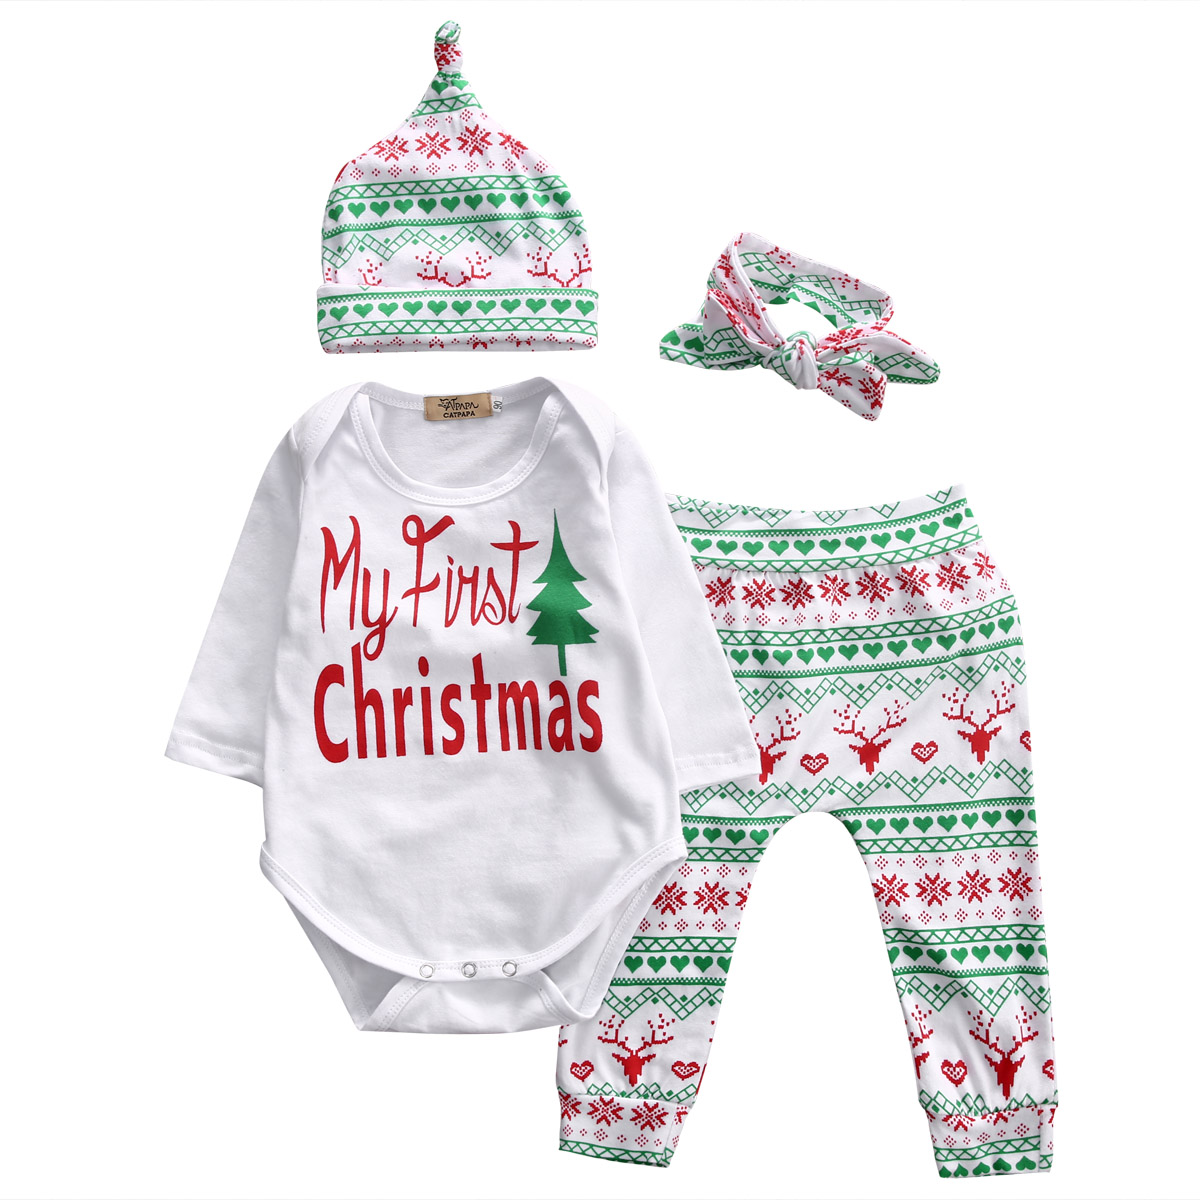 Pcs newborn kids baby girl boy letter christmas outfit set infant